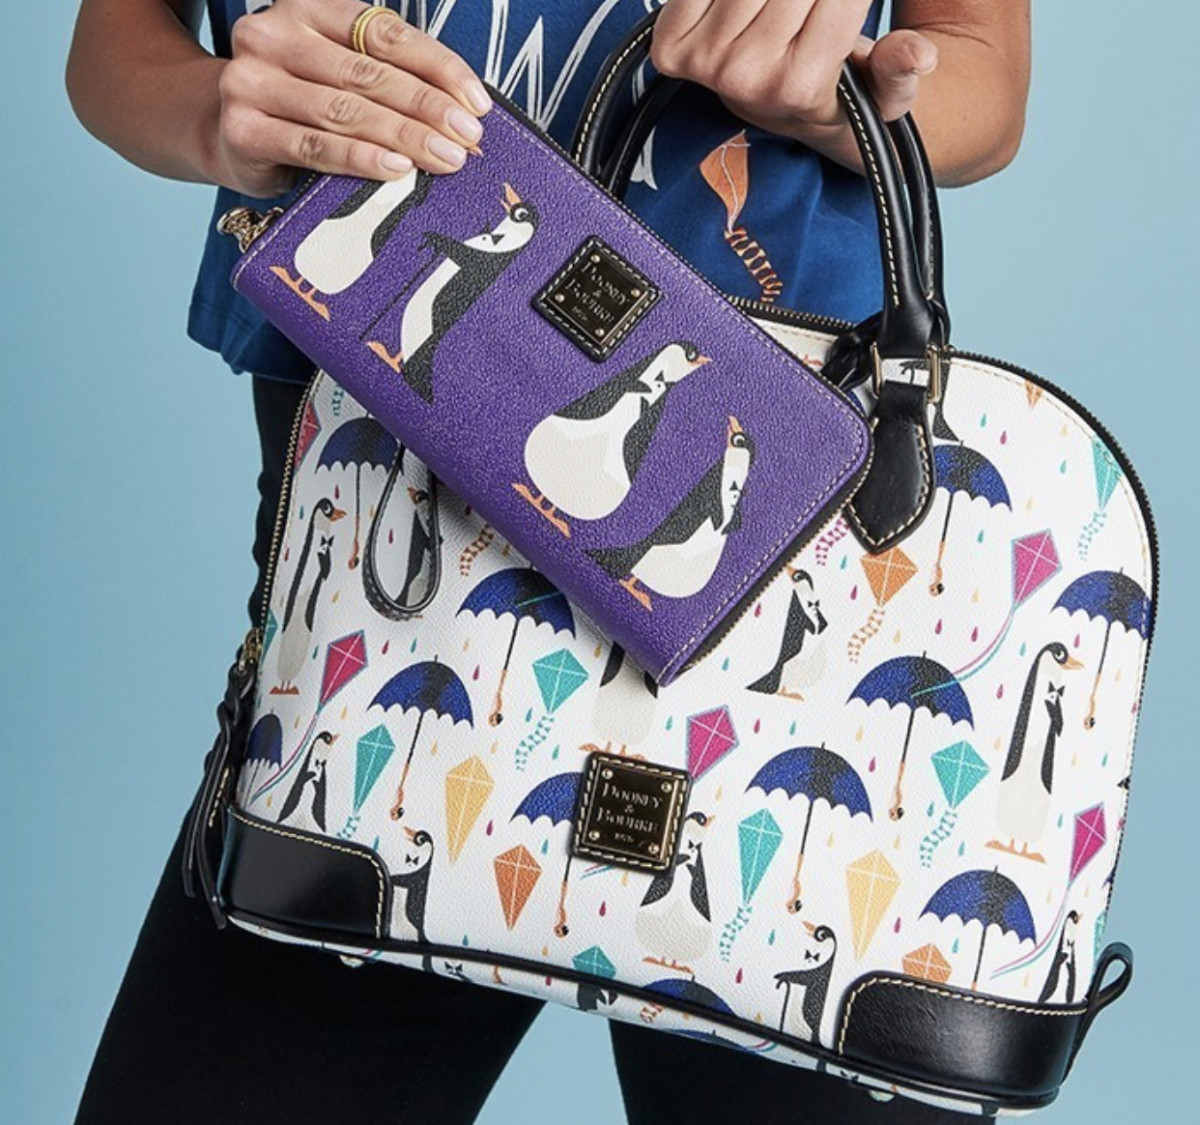 The New Mary Poppins Dooney's have arrived! 6